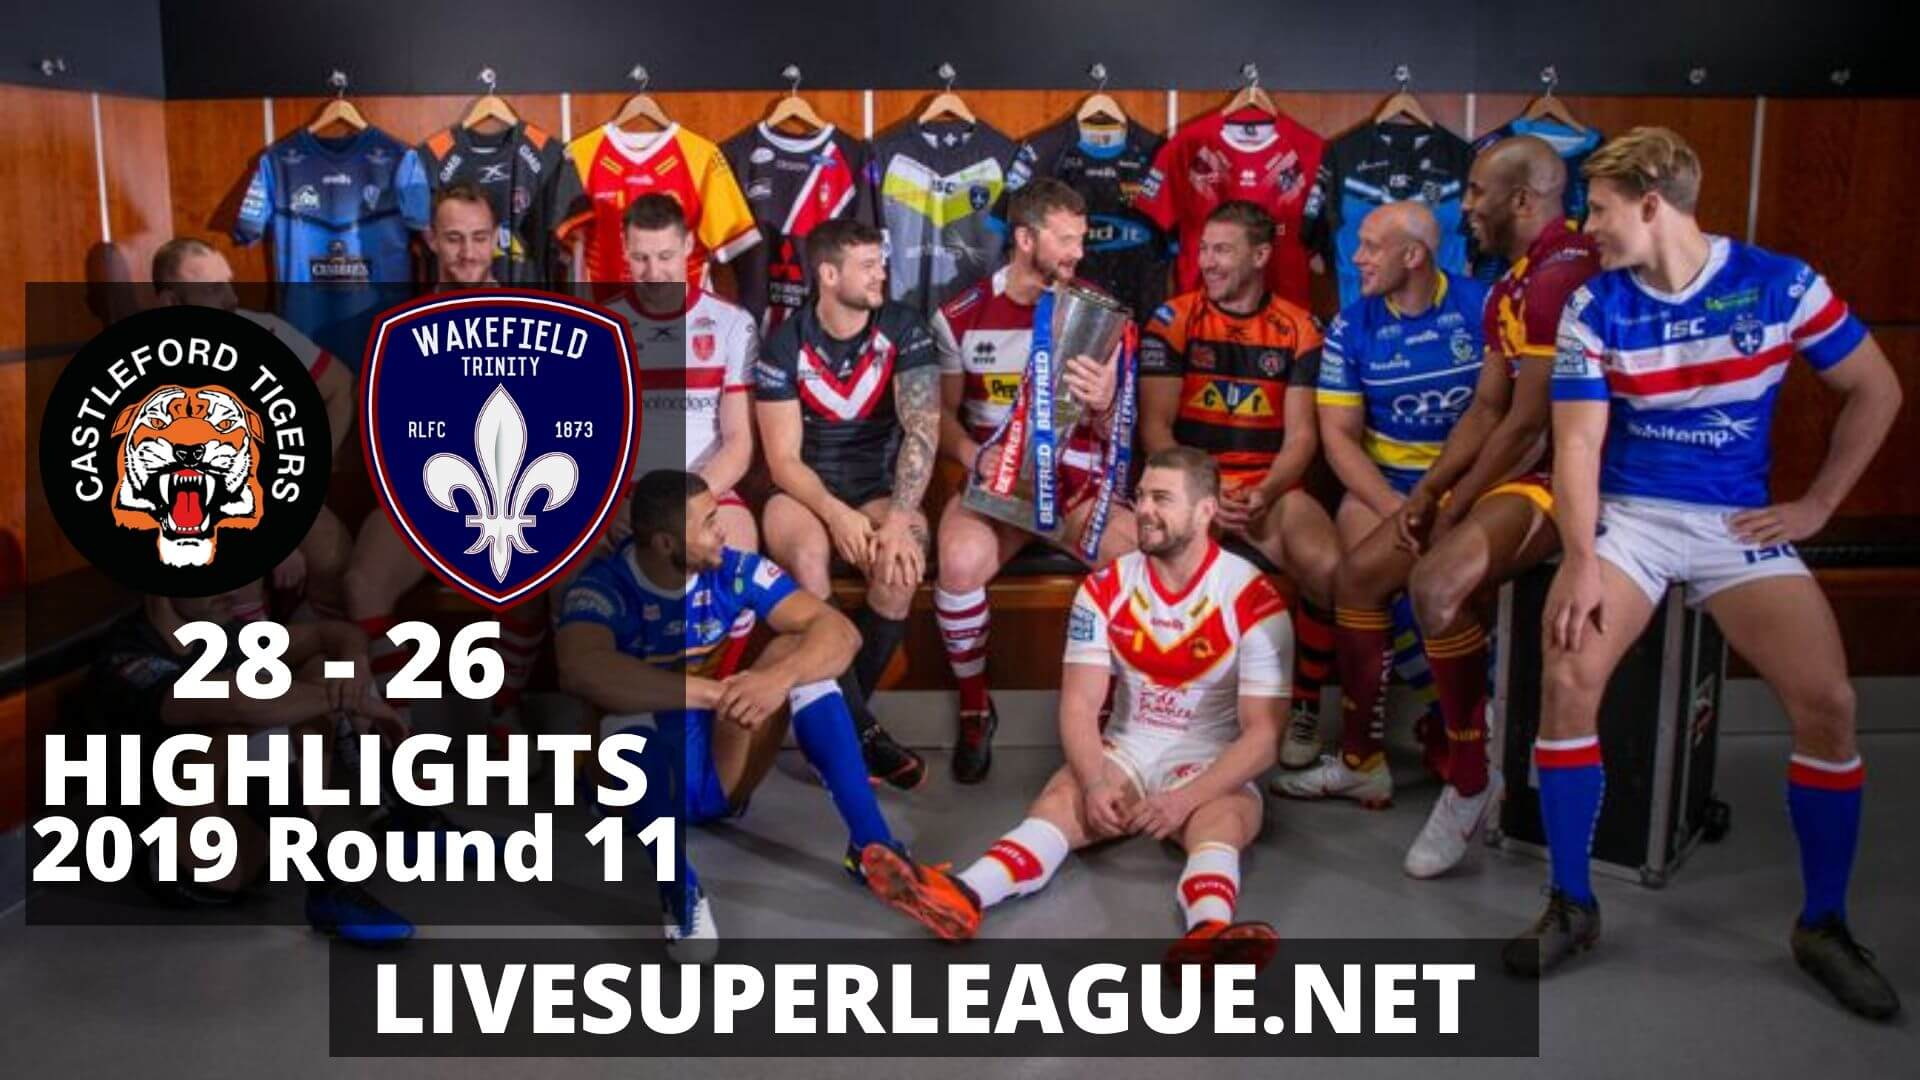 Castleford Tigers Vs Wakefield Trinity Highlights 2019 Round 11